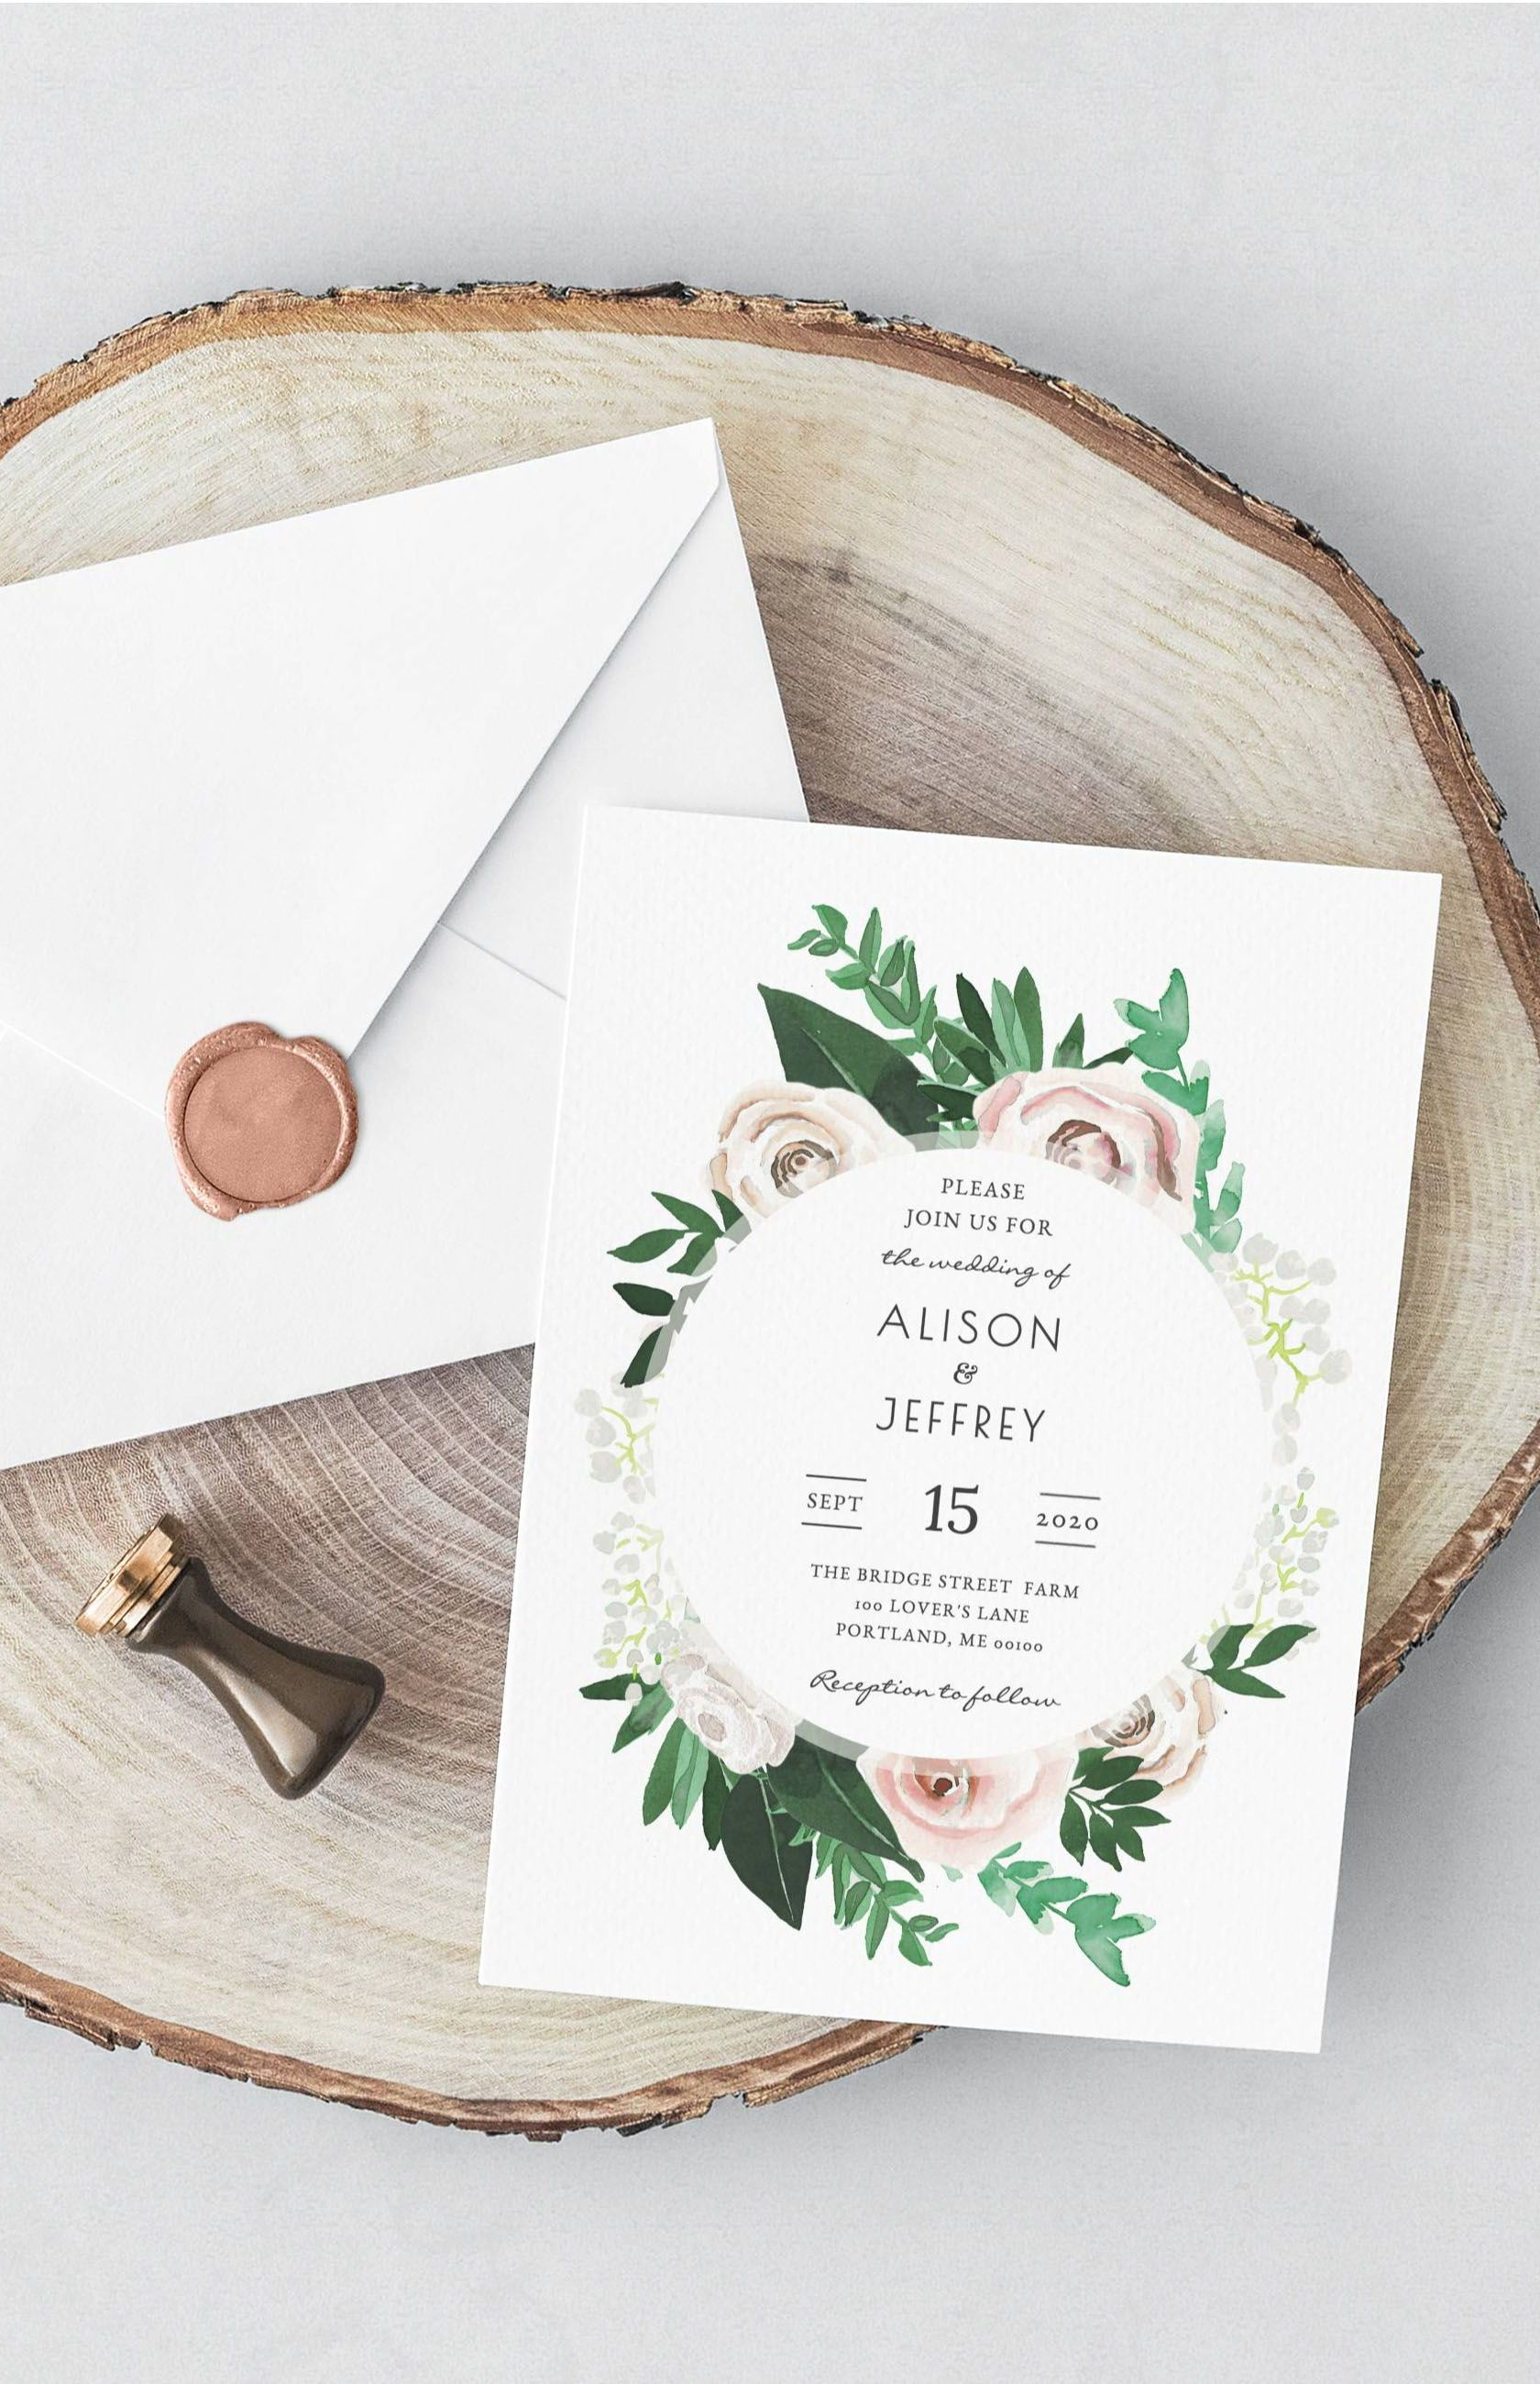 Gorgeous Watercolor Floral Green And White Wedding Invite Template From Etsy Wedding Invitations Diy Creative Wedding Invitations Wedding Invitation Templates